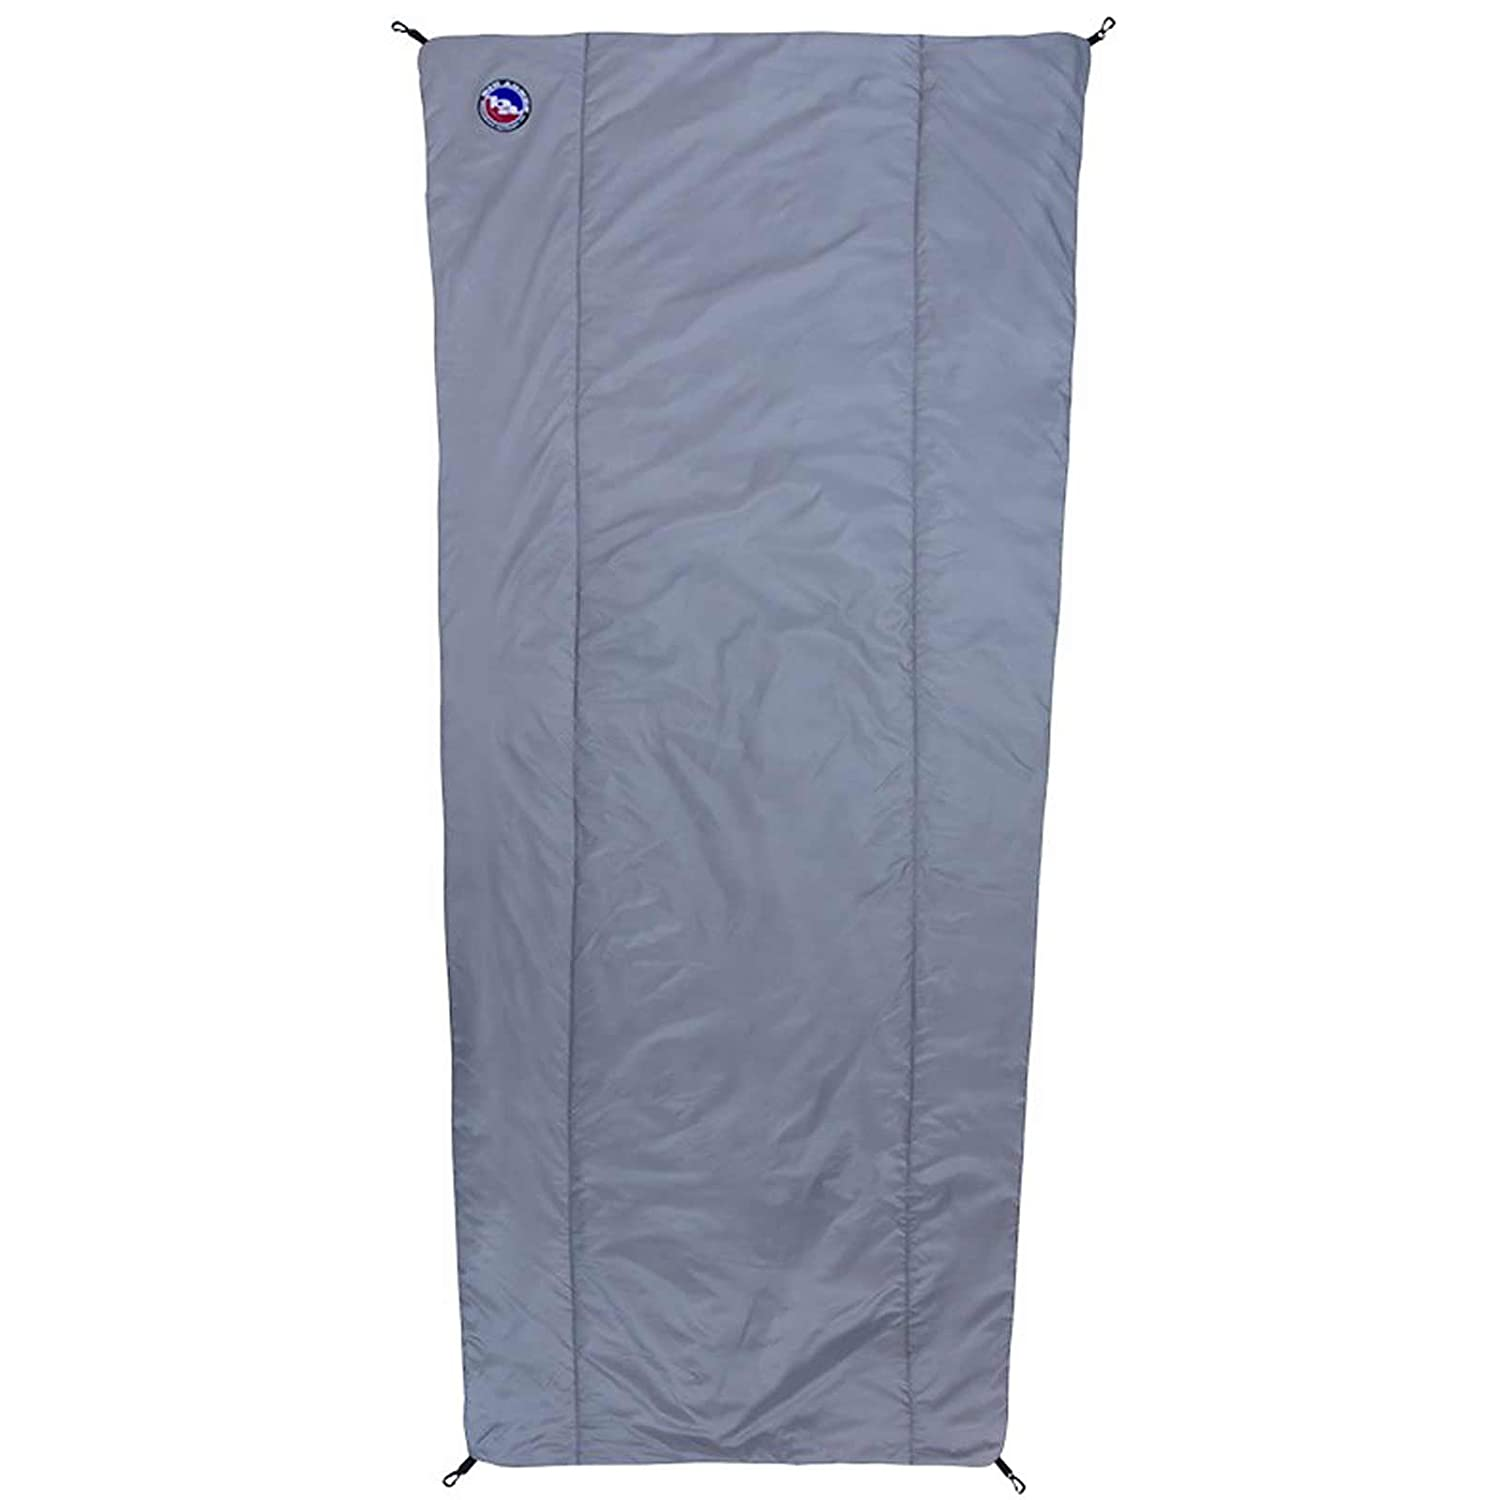 Big Agnes - Sleeping Bag Liner Sythetic (Primaloft) by Big Agnes B00U0J2W7A